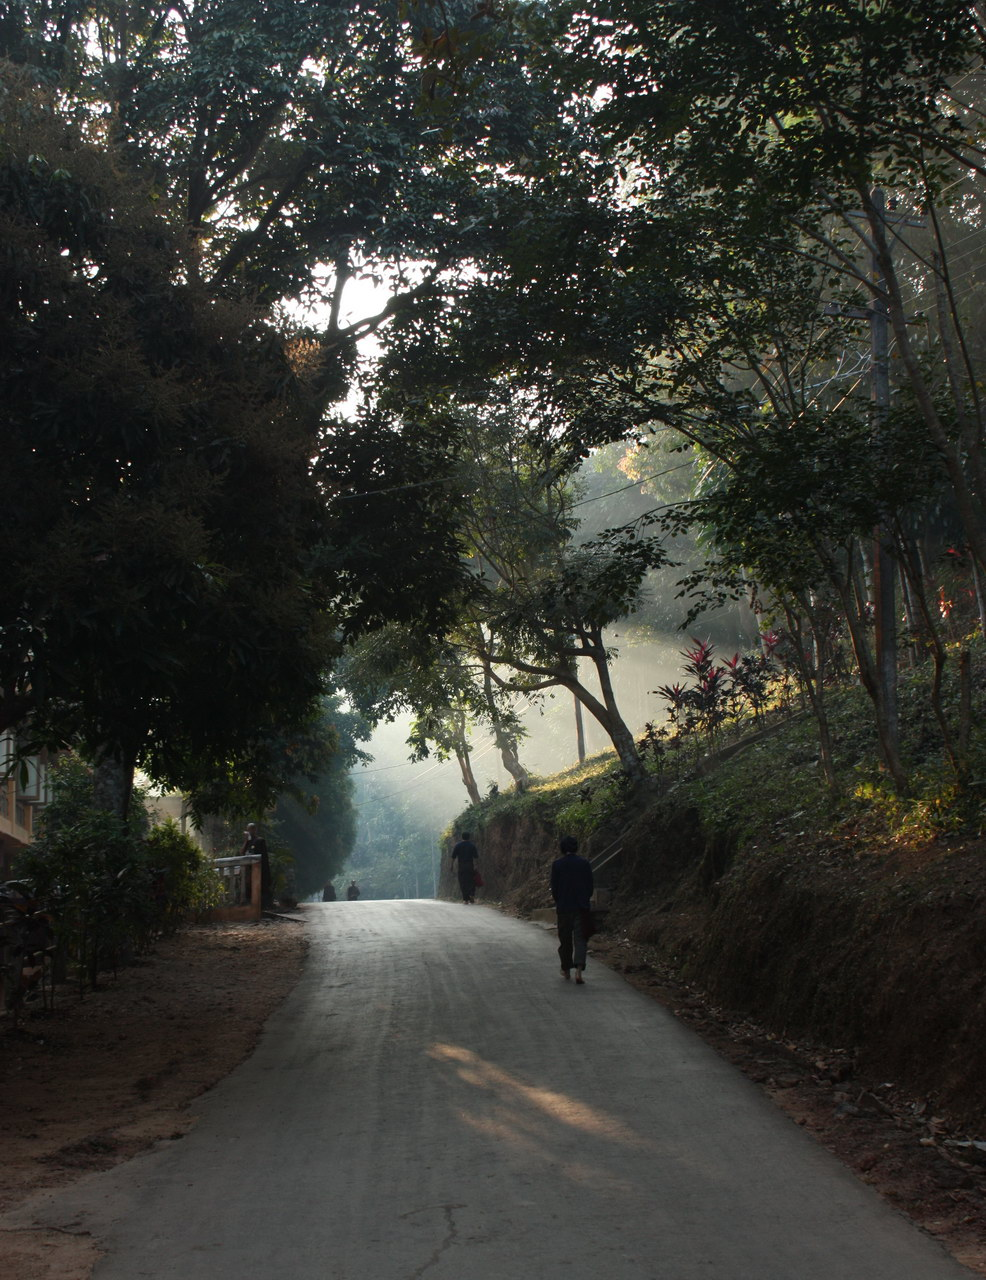 The Road Leading to the Meditation Hall